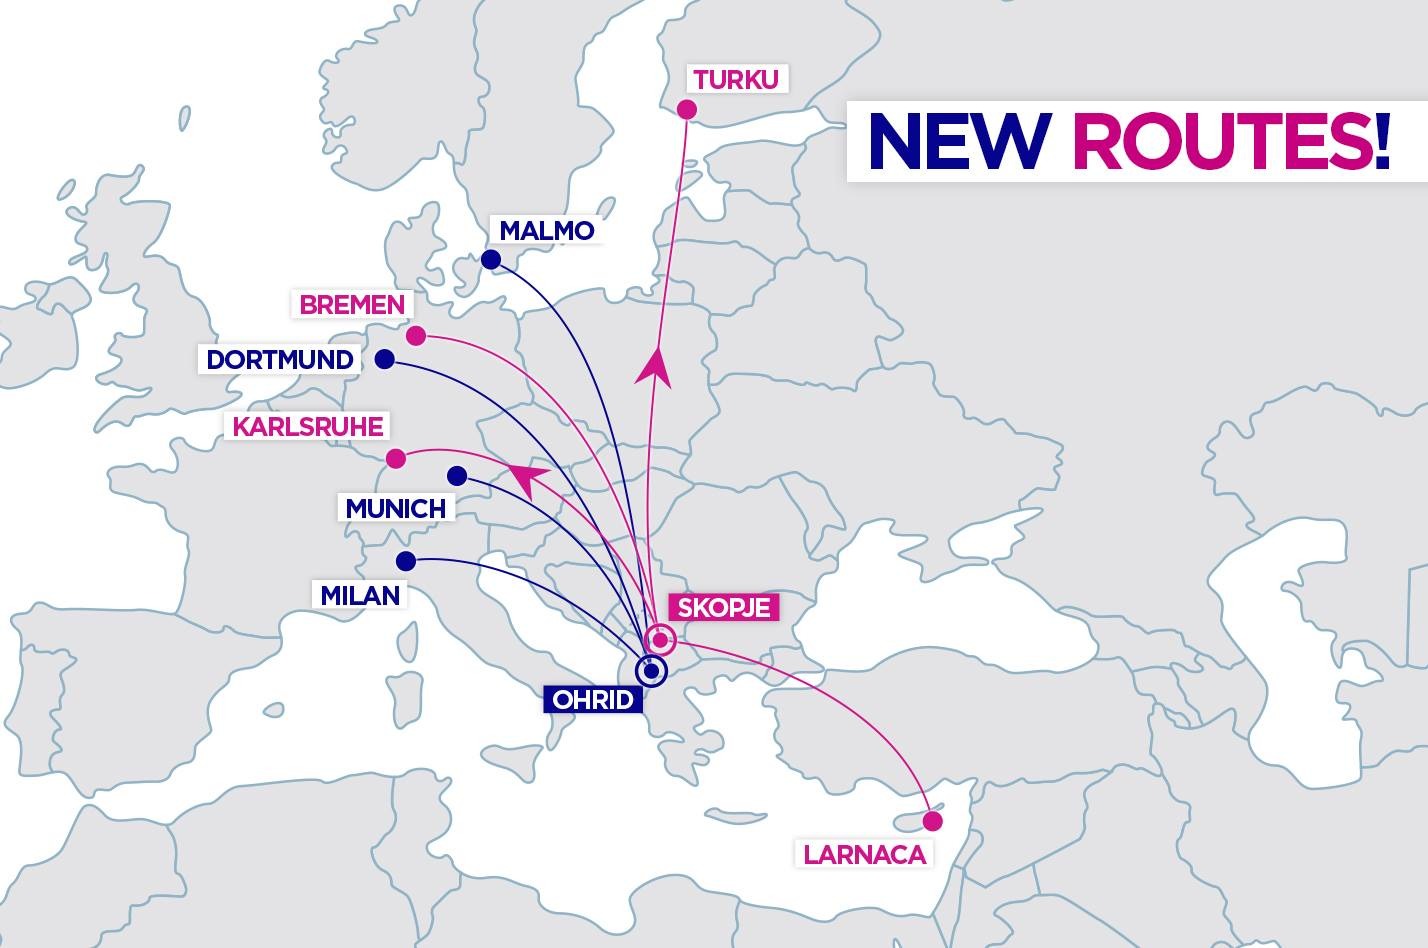 Wizzair Announces 8 New Routes From To Republic Of Macedonia